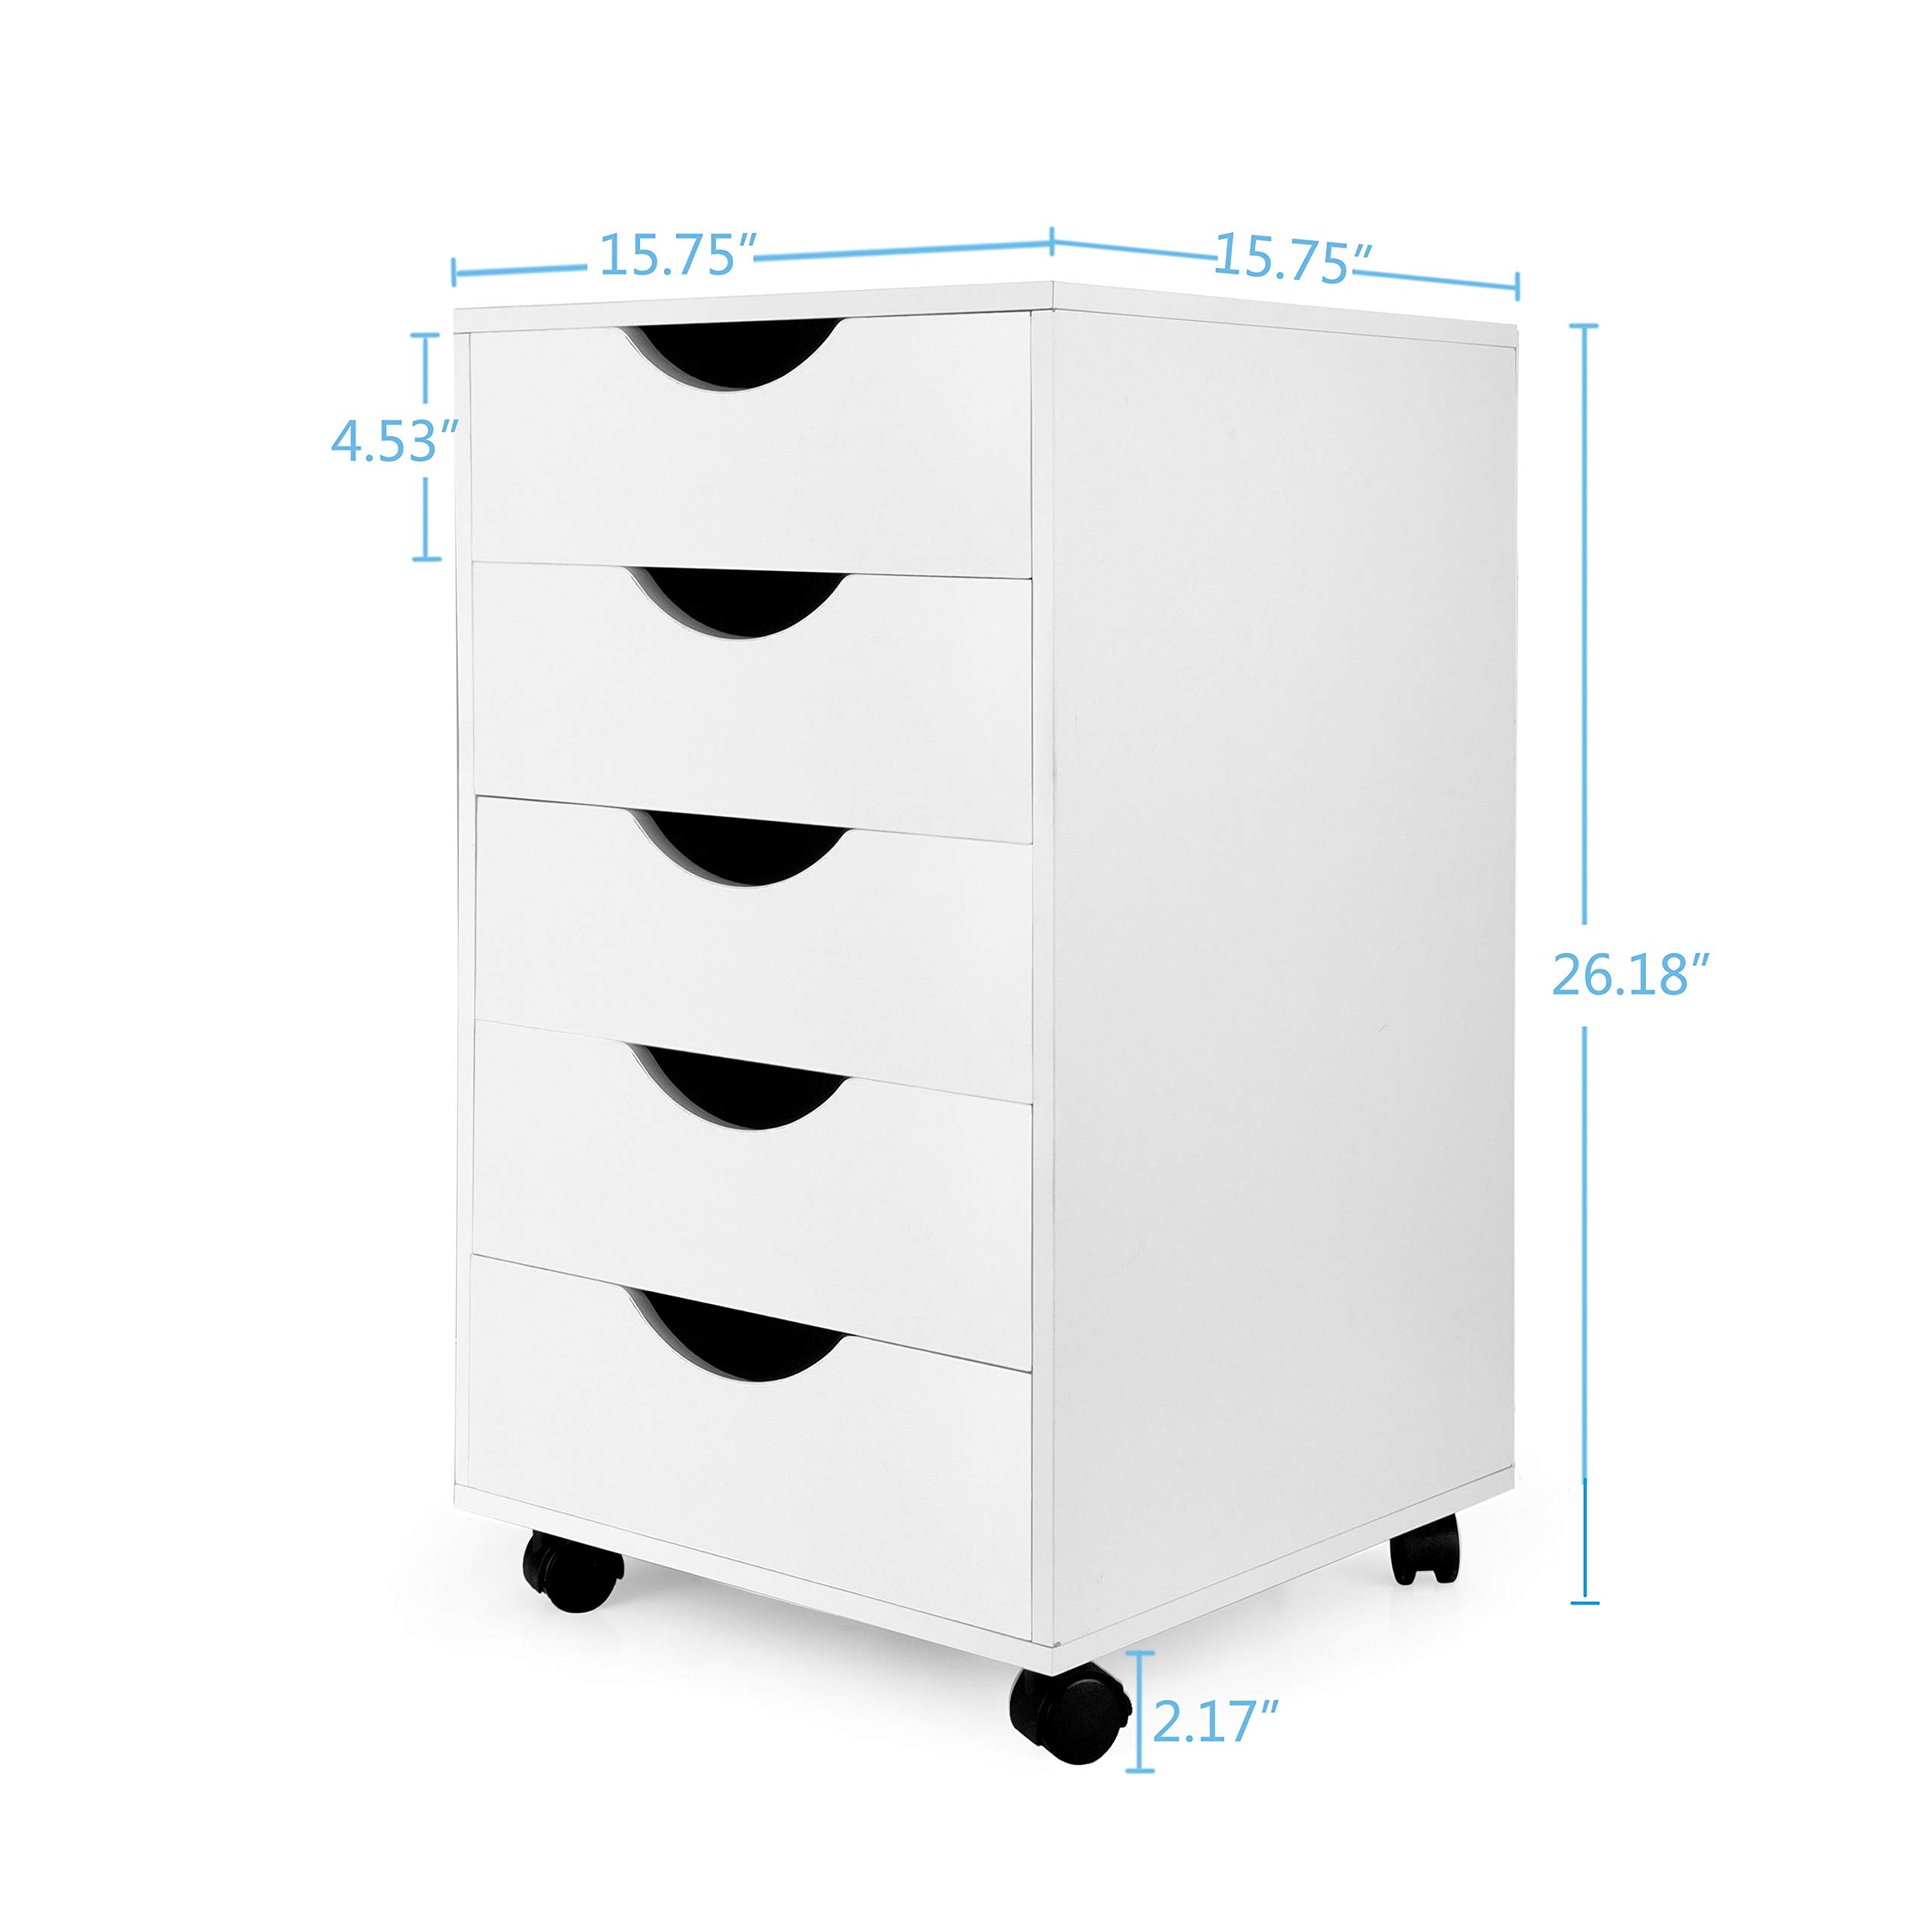 eMerit 5 Drawer Wood File Cabinet Roll Cart Drawer for Office Organization White by EMERIT (Image #5)